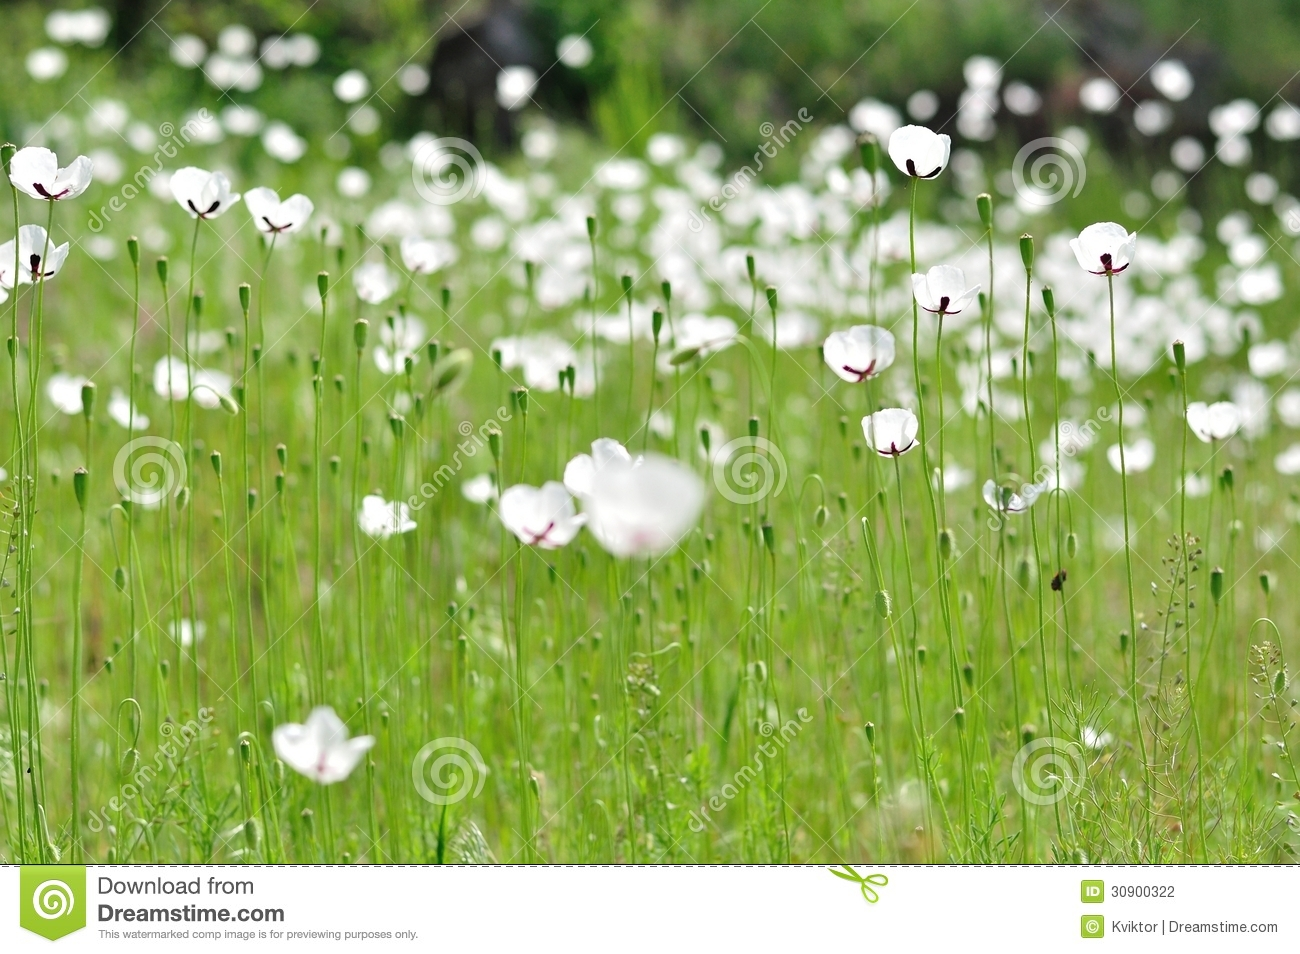 Meadow with white flowers in spring stock photo image of meadow with white flowers in spring horizontal farm royalty free stock photo download meadow with white flowers mightylinksfo